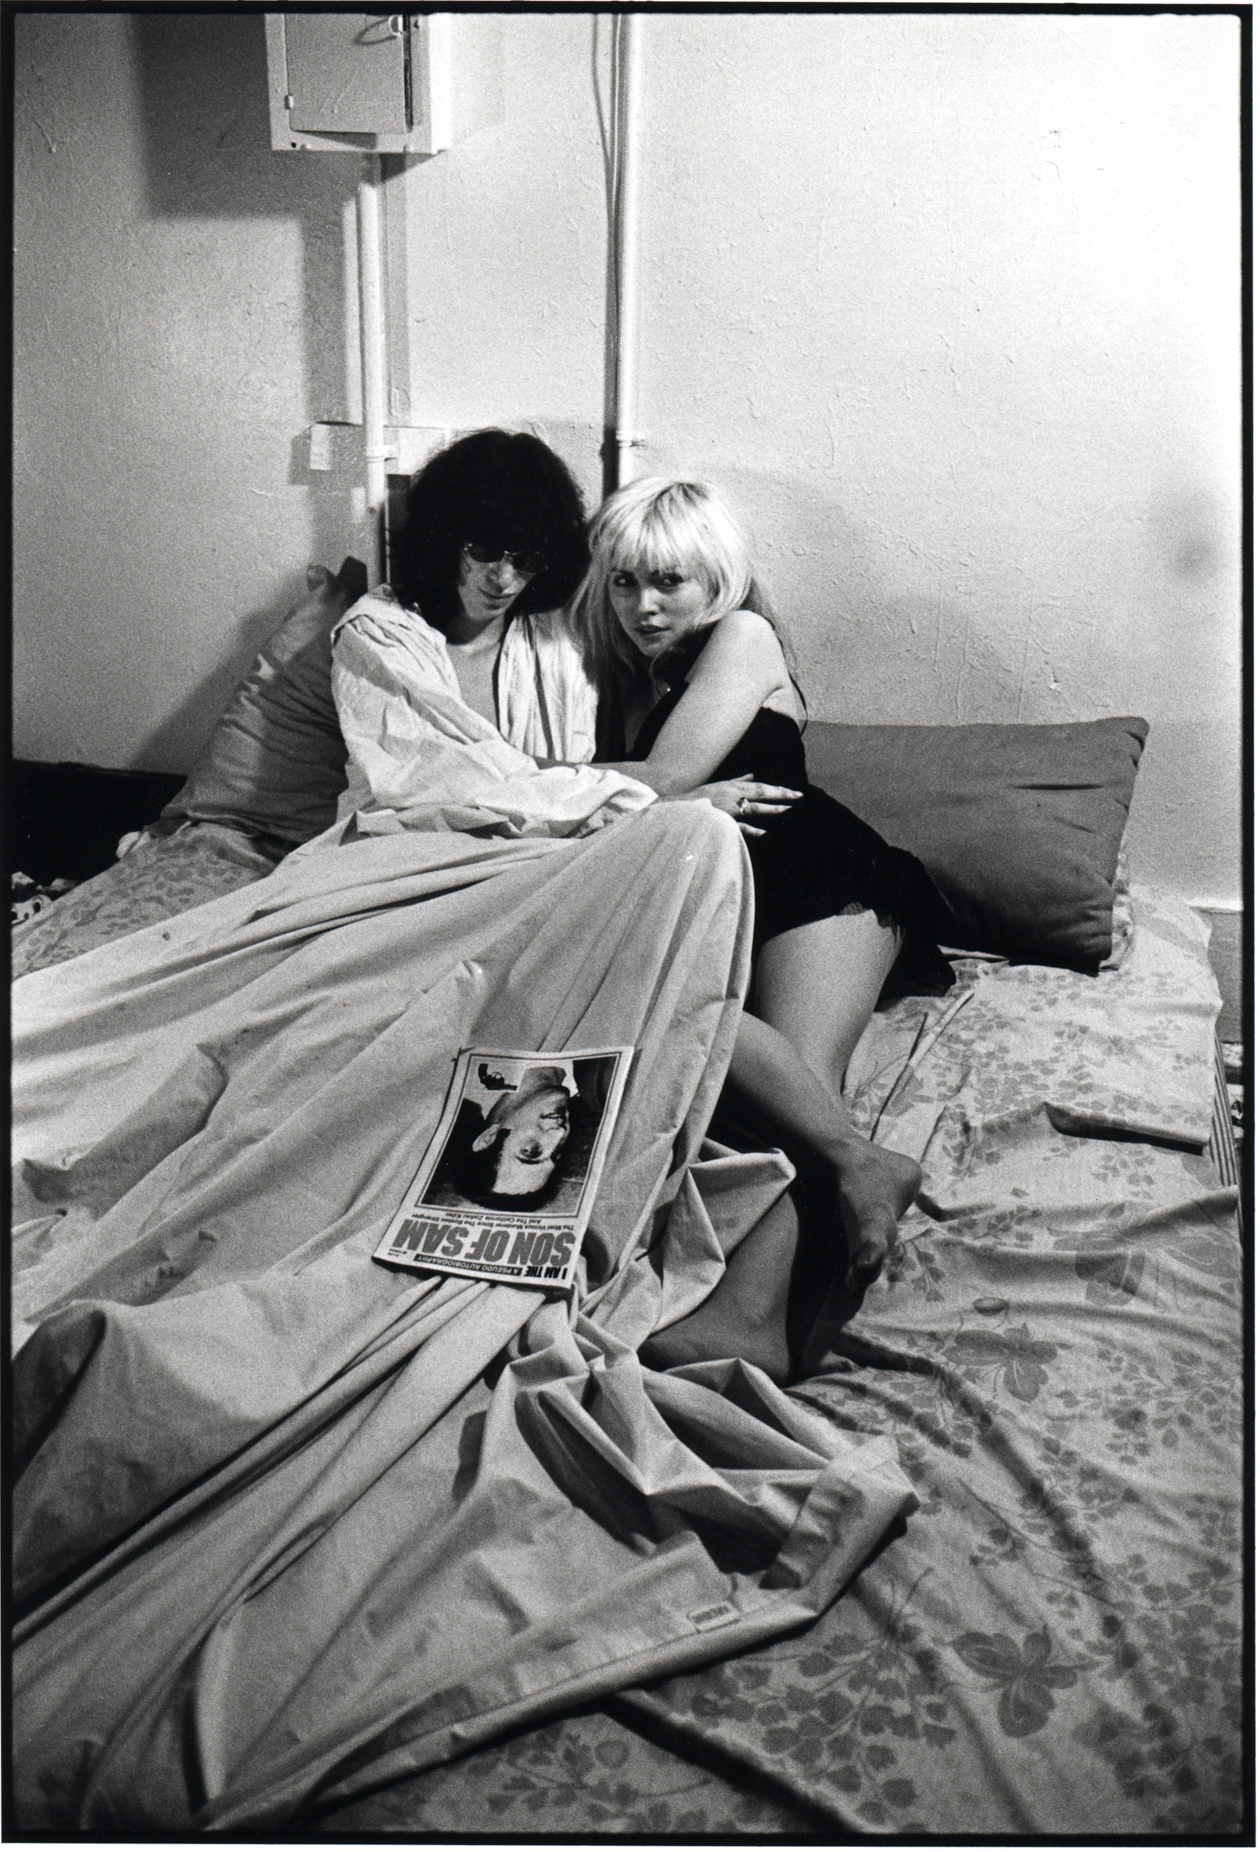 Joey Ramone and Debbie Harry, 1977.